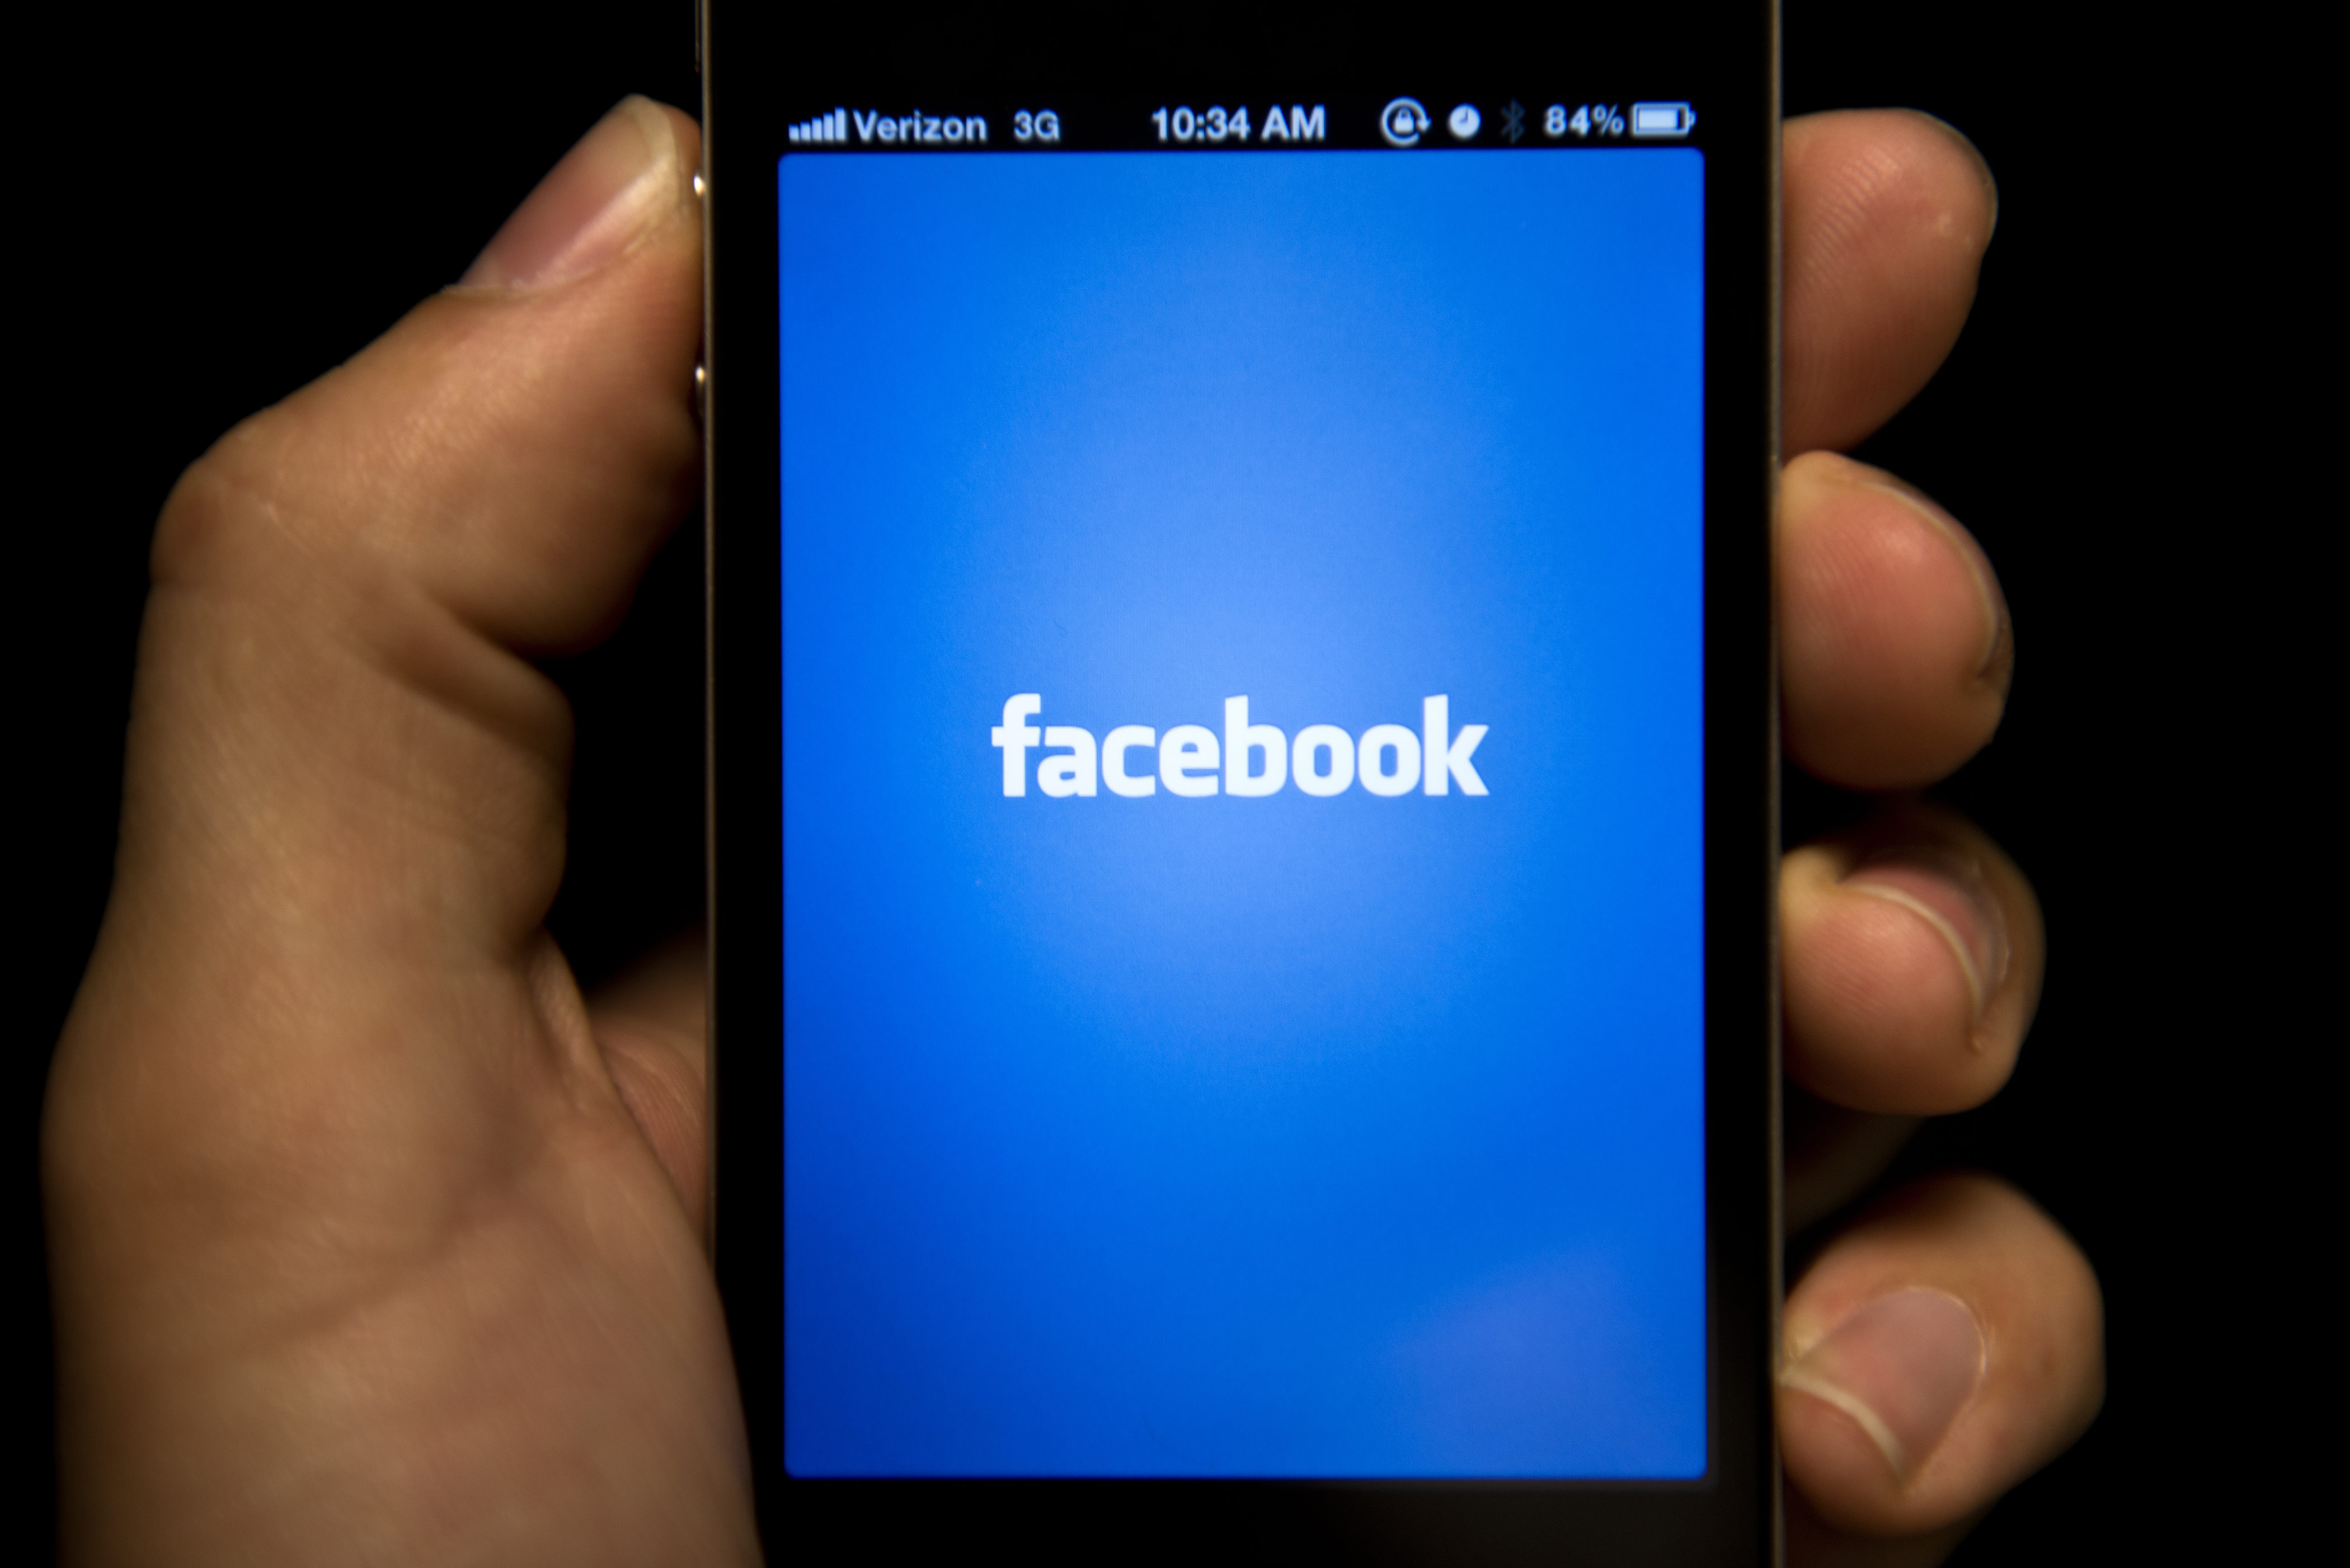 A view of an Apple iPhone displaying the Facebook app's splash screen, May 10, 2012 in Washington.